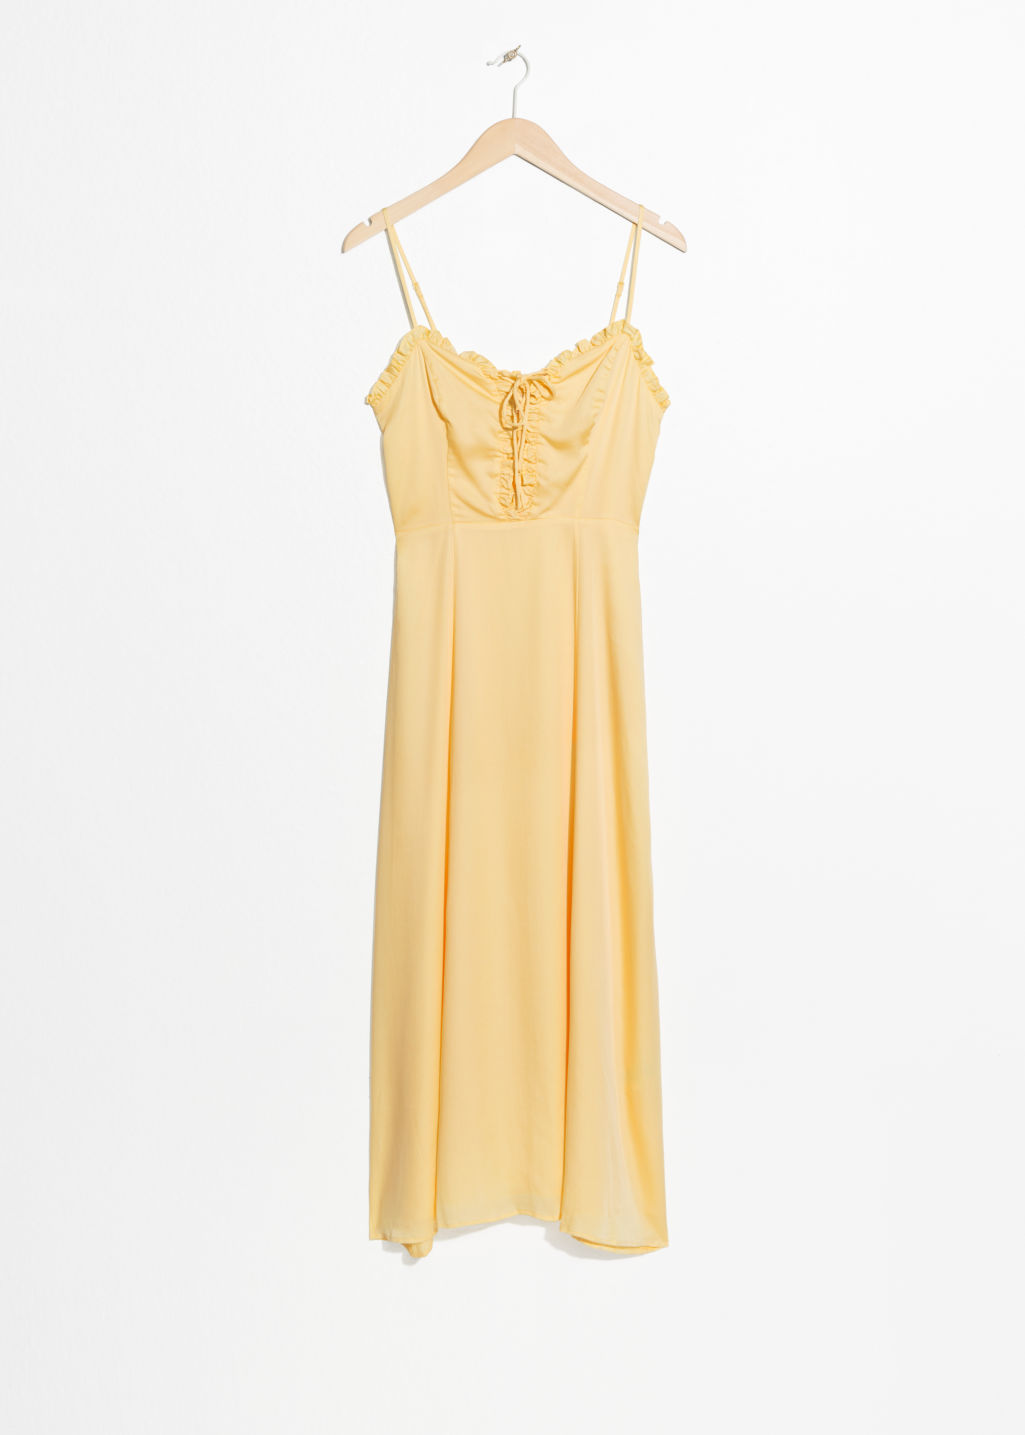 a8e7015b22c Ruffled Lace Up Midi Sundress - Yellow - Maxi dresses -   Other Stories